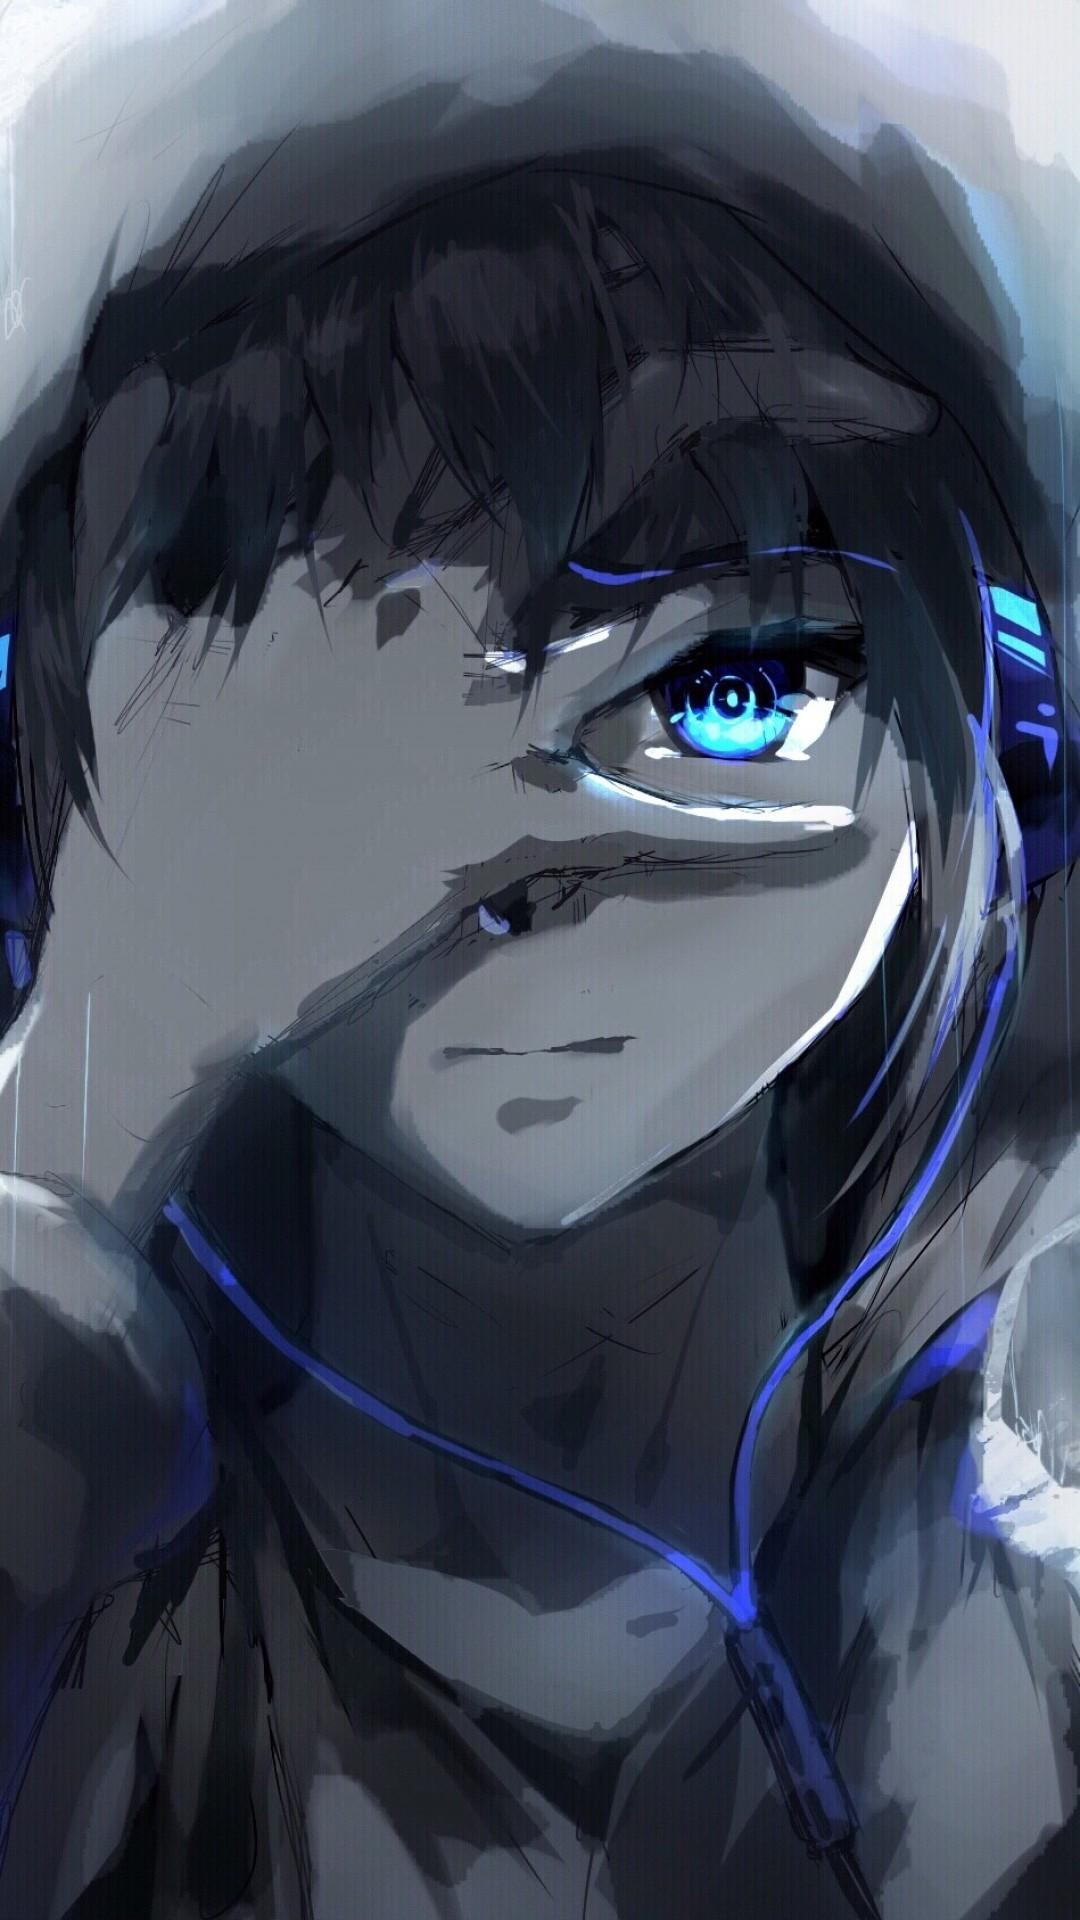 Anime Boy Profile Wallpapers Wallpaper Cave